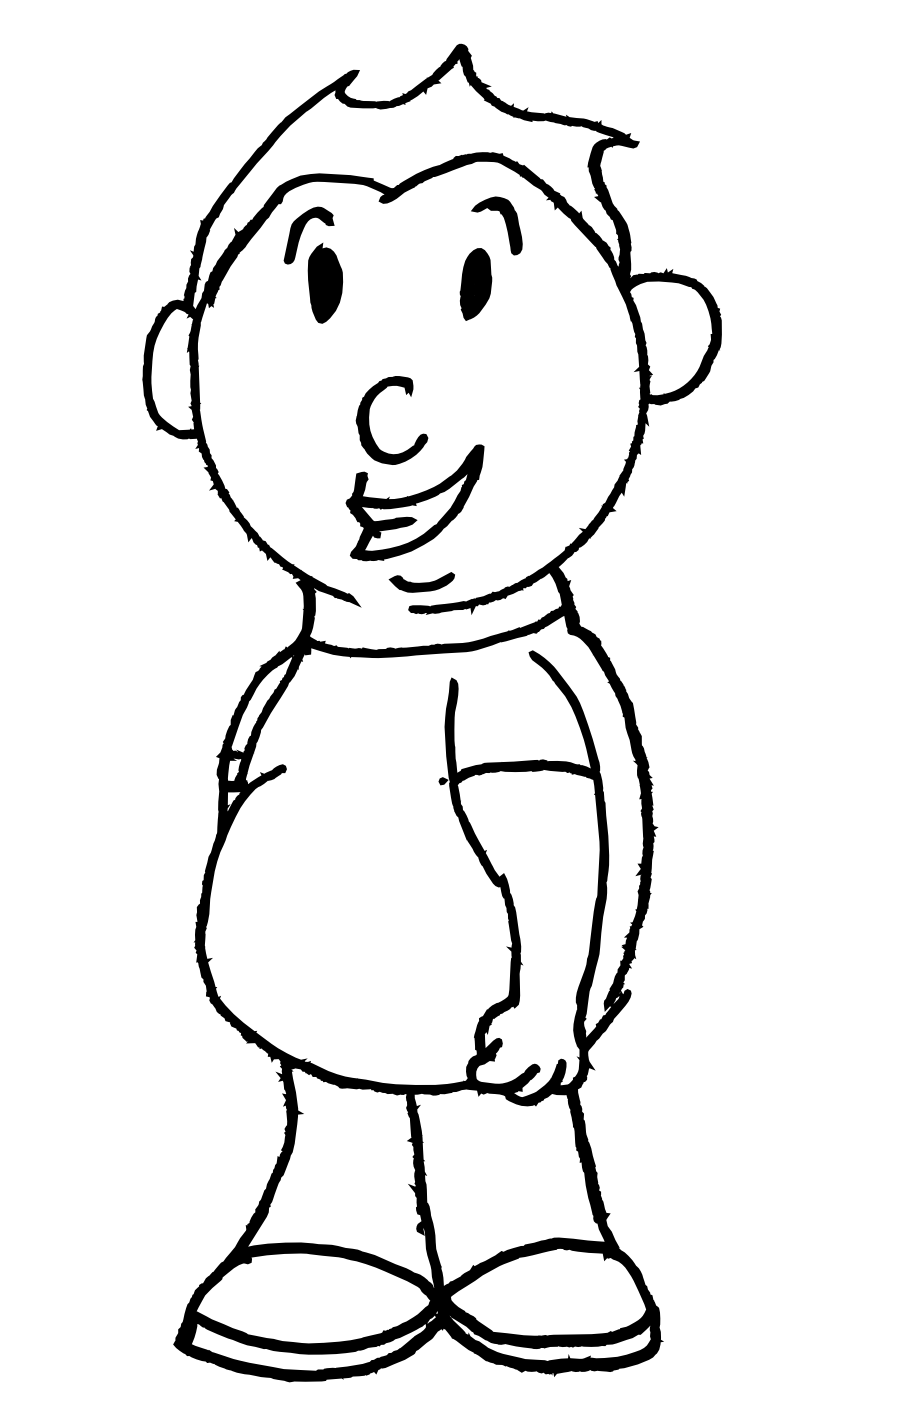 cartoon characters to draw easy 55 cute and easy cartoon characters to draw when bored easy cartoon characters to draw